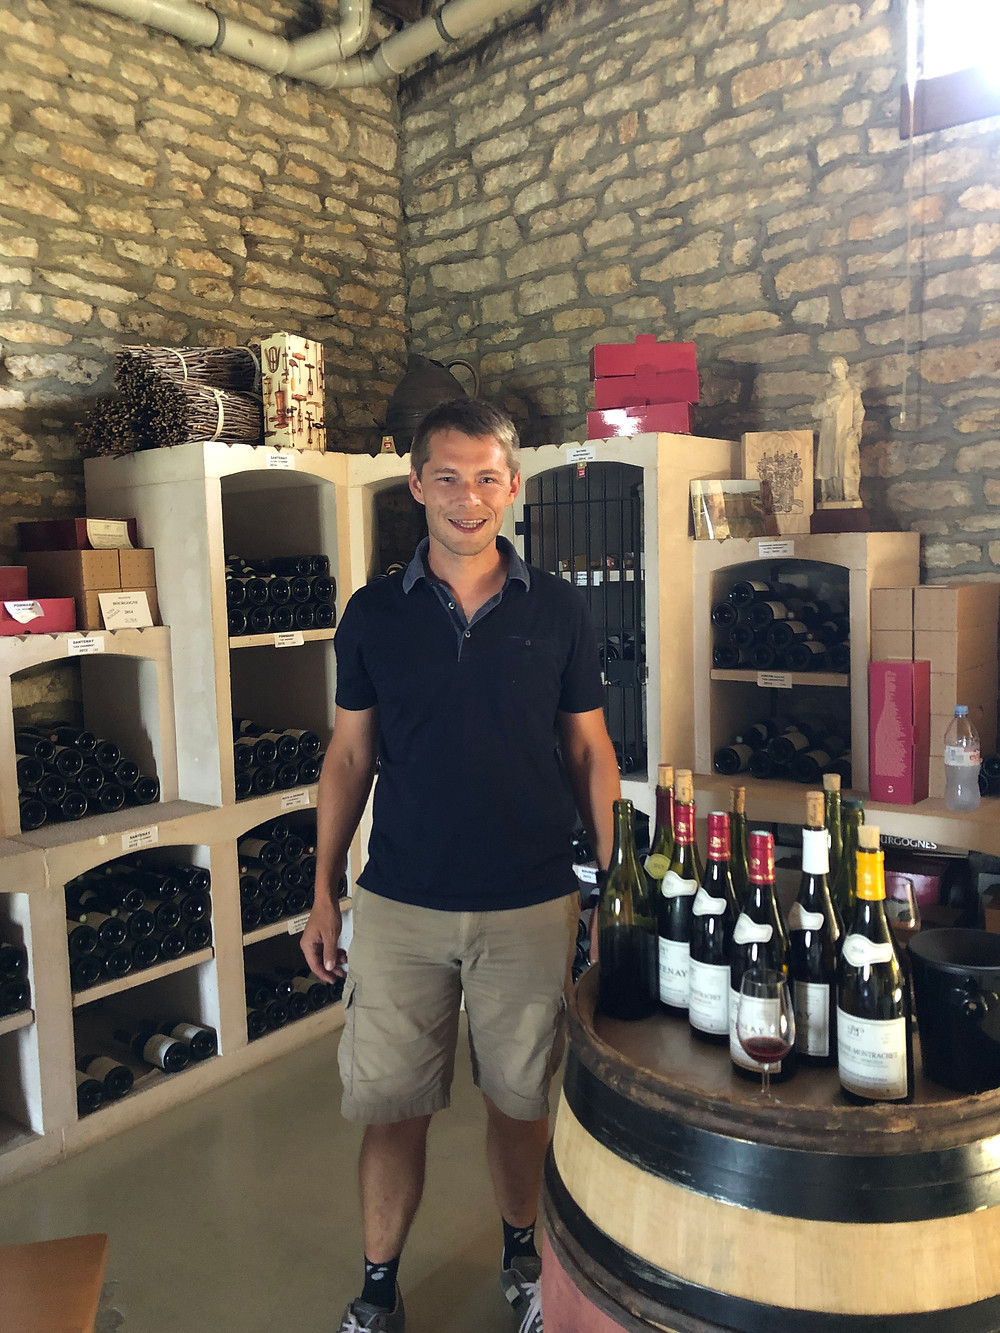 Wine tasting tour in Burgundy, in Cote de Beaune Santenay village with Anotine Lequin in Louis Lequin winery